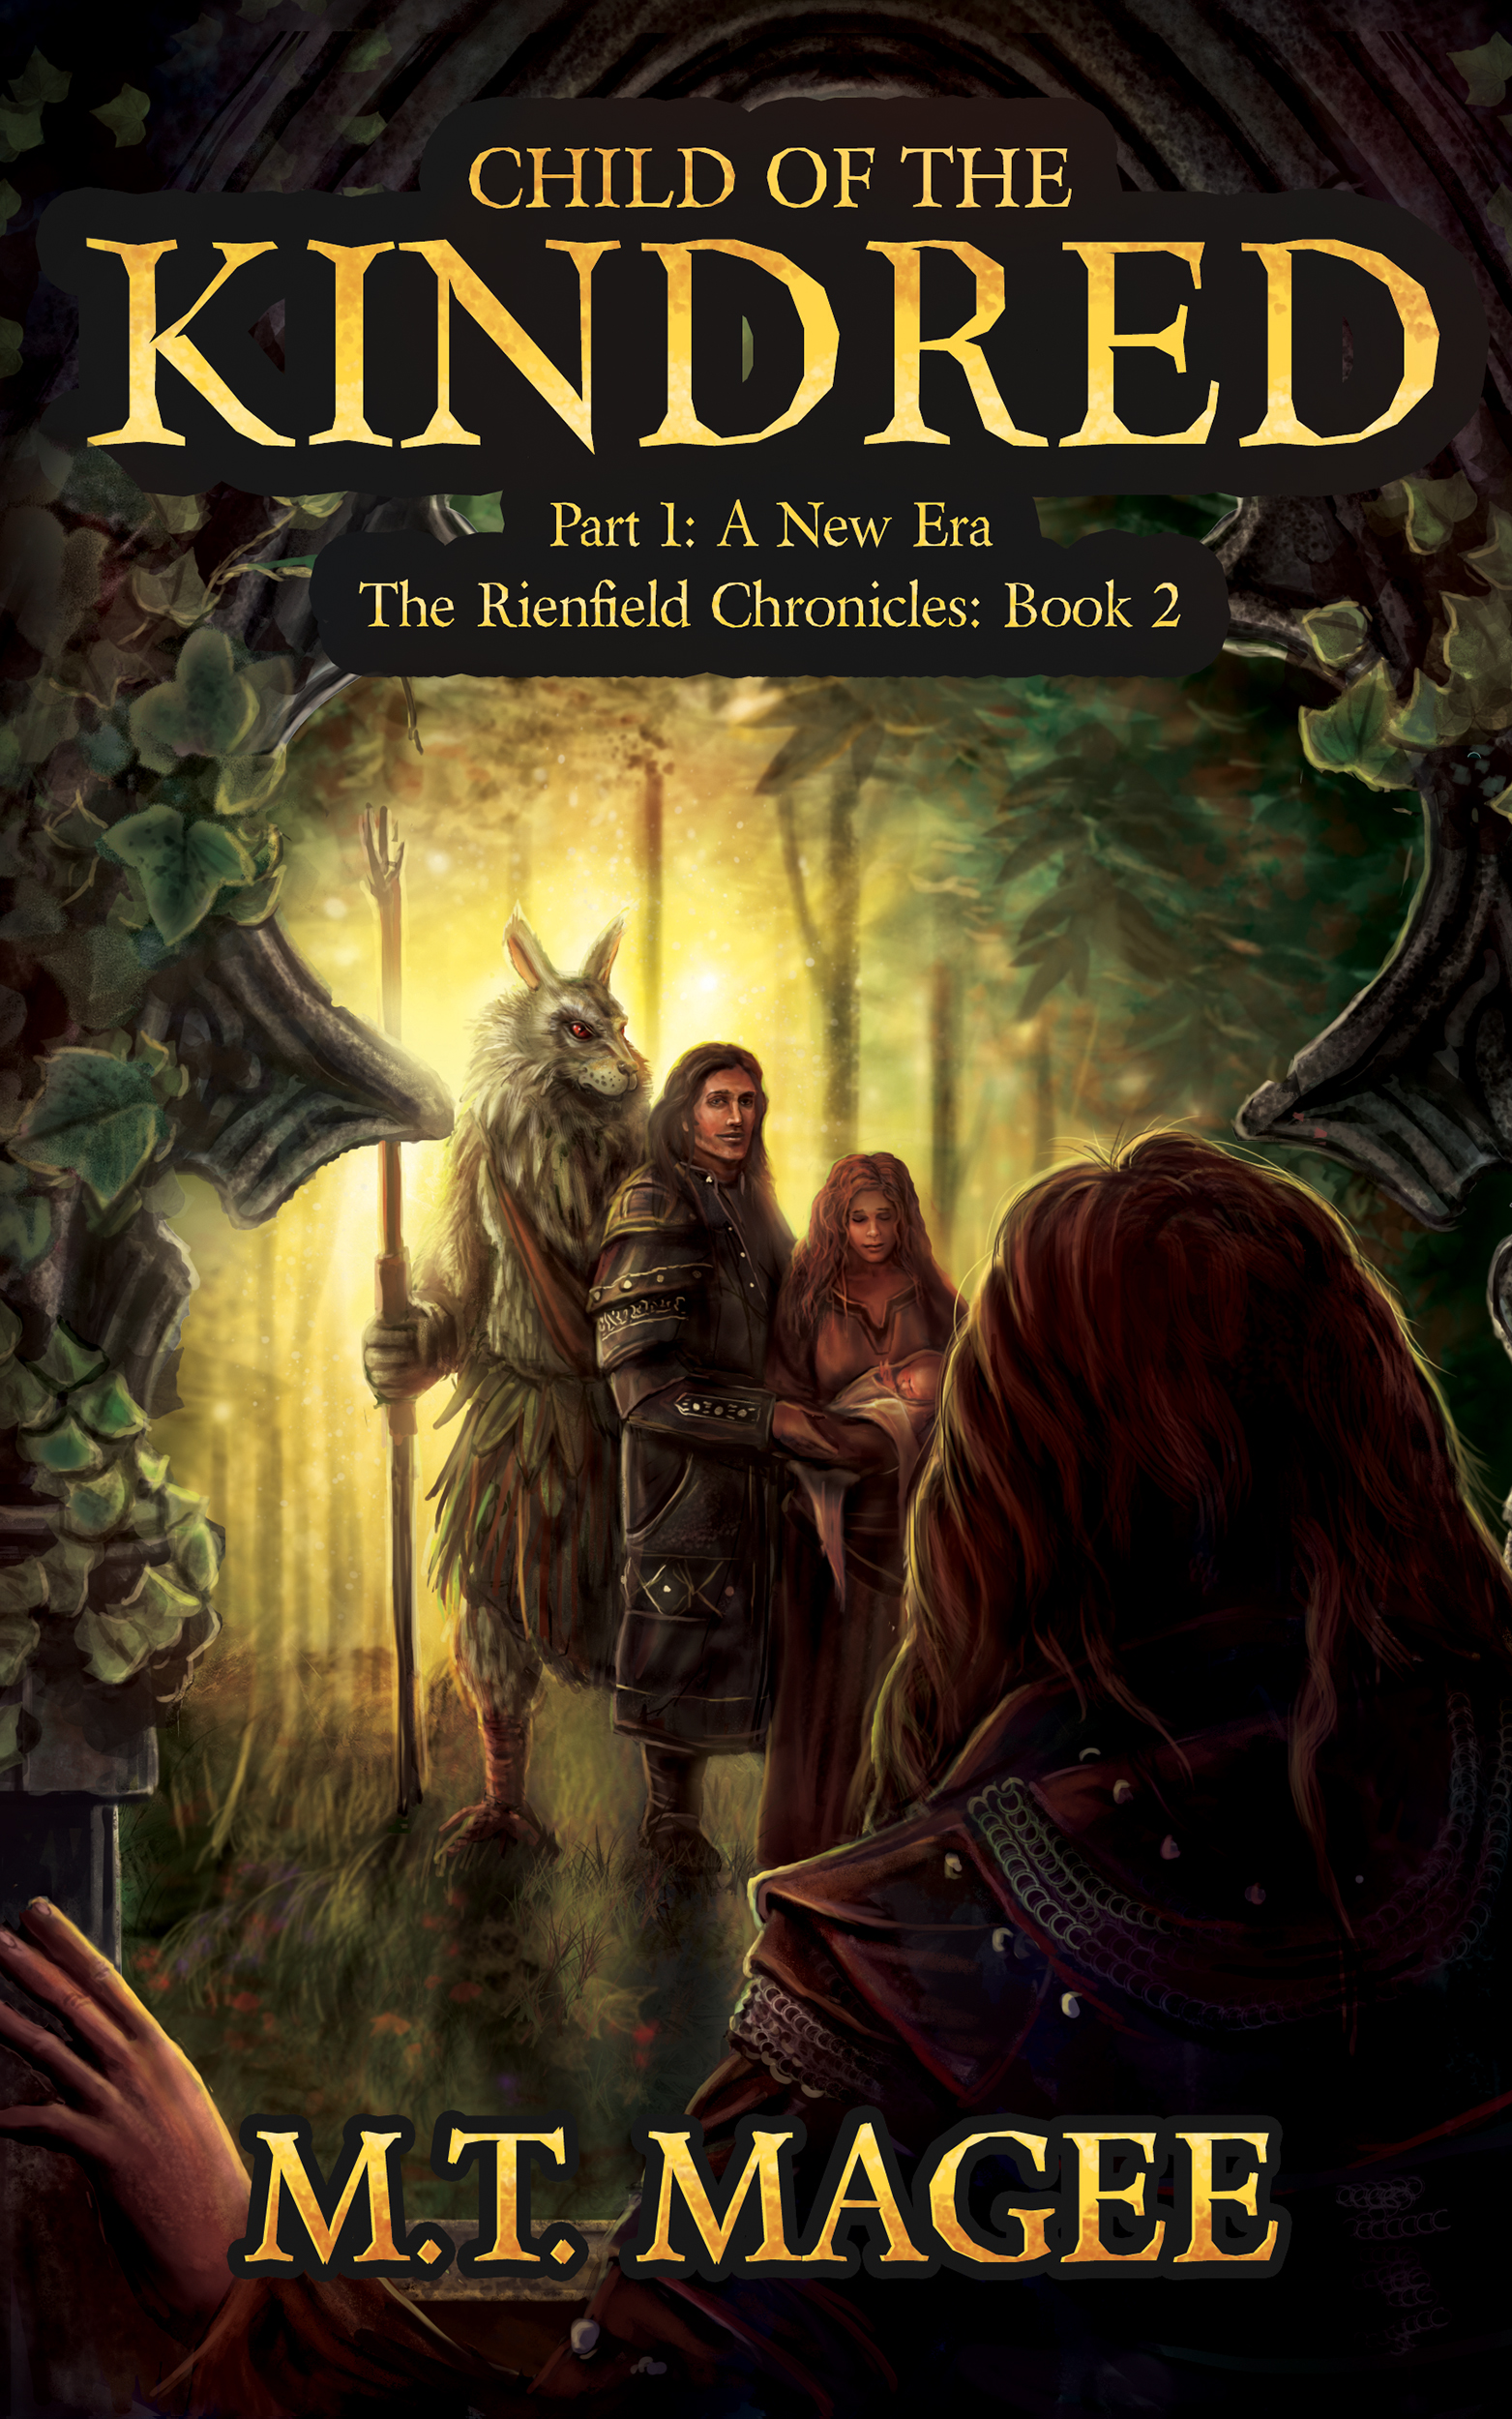 Book Cover Fantasy Explanation : Fantasy book covers the rienfield chronicles noble